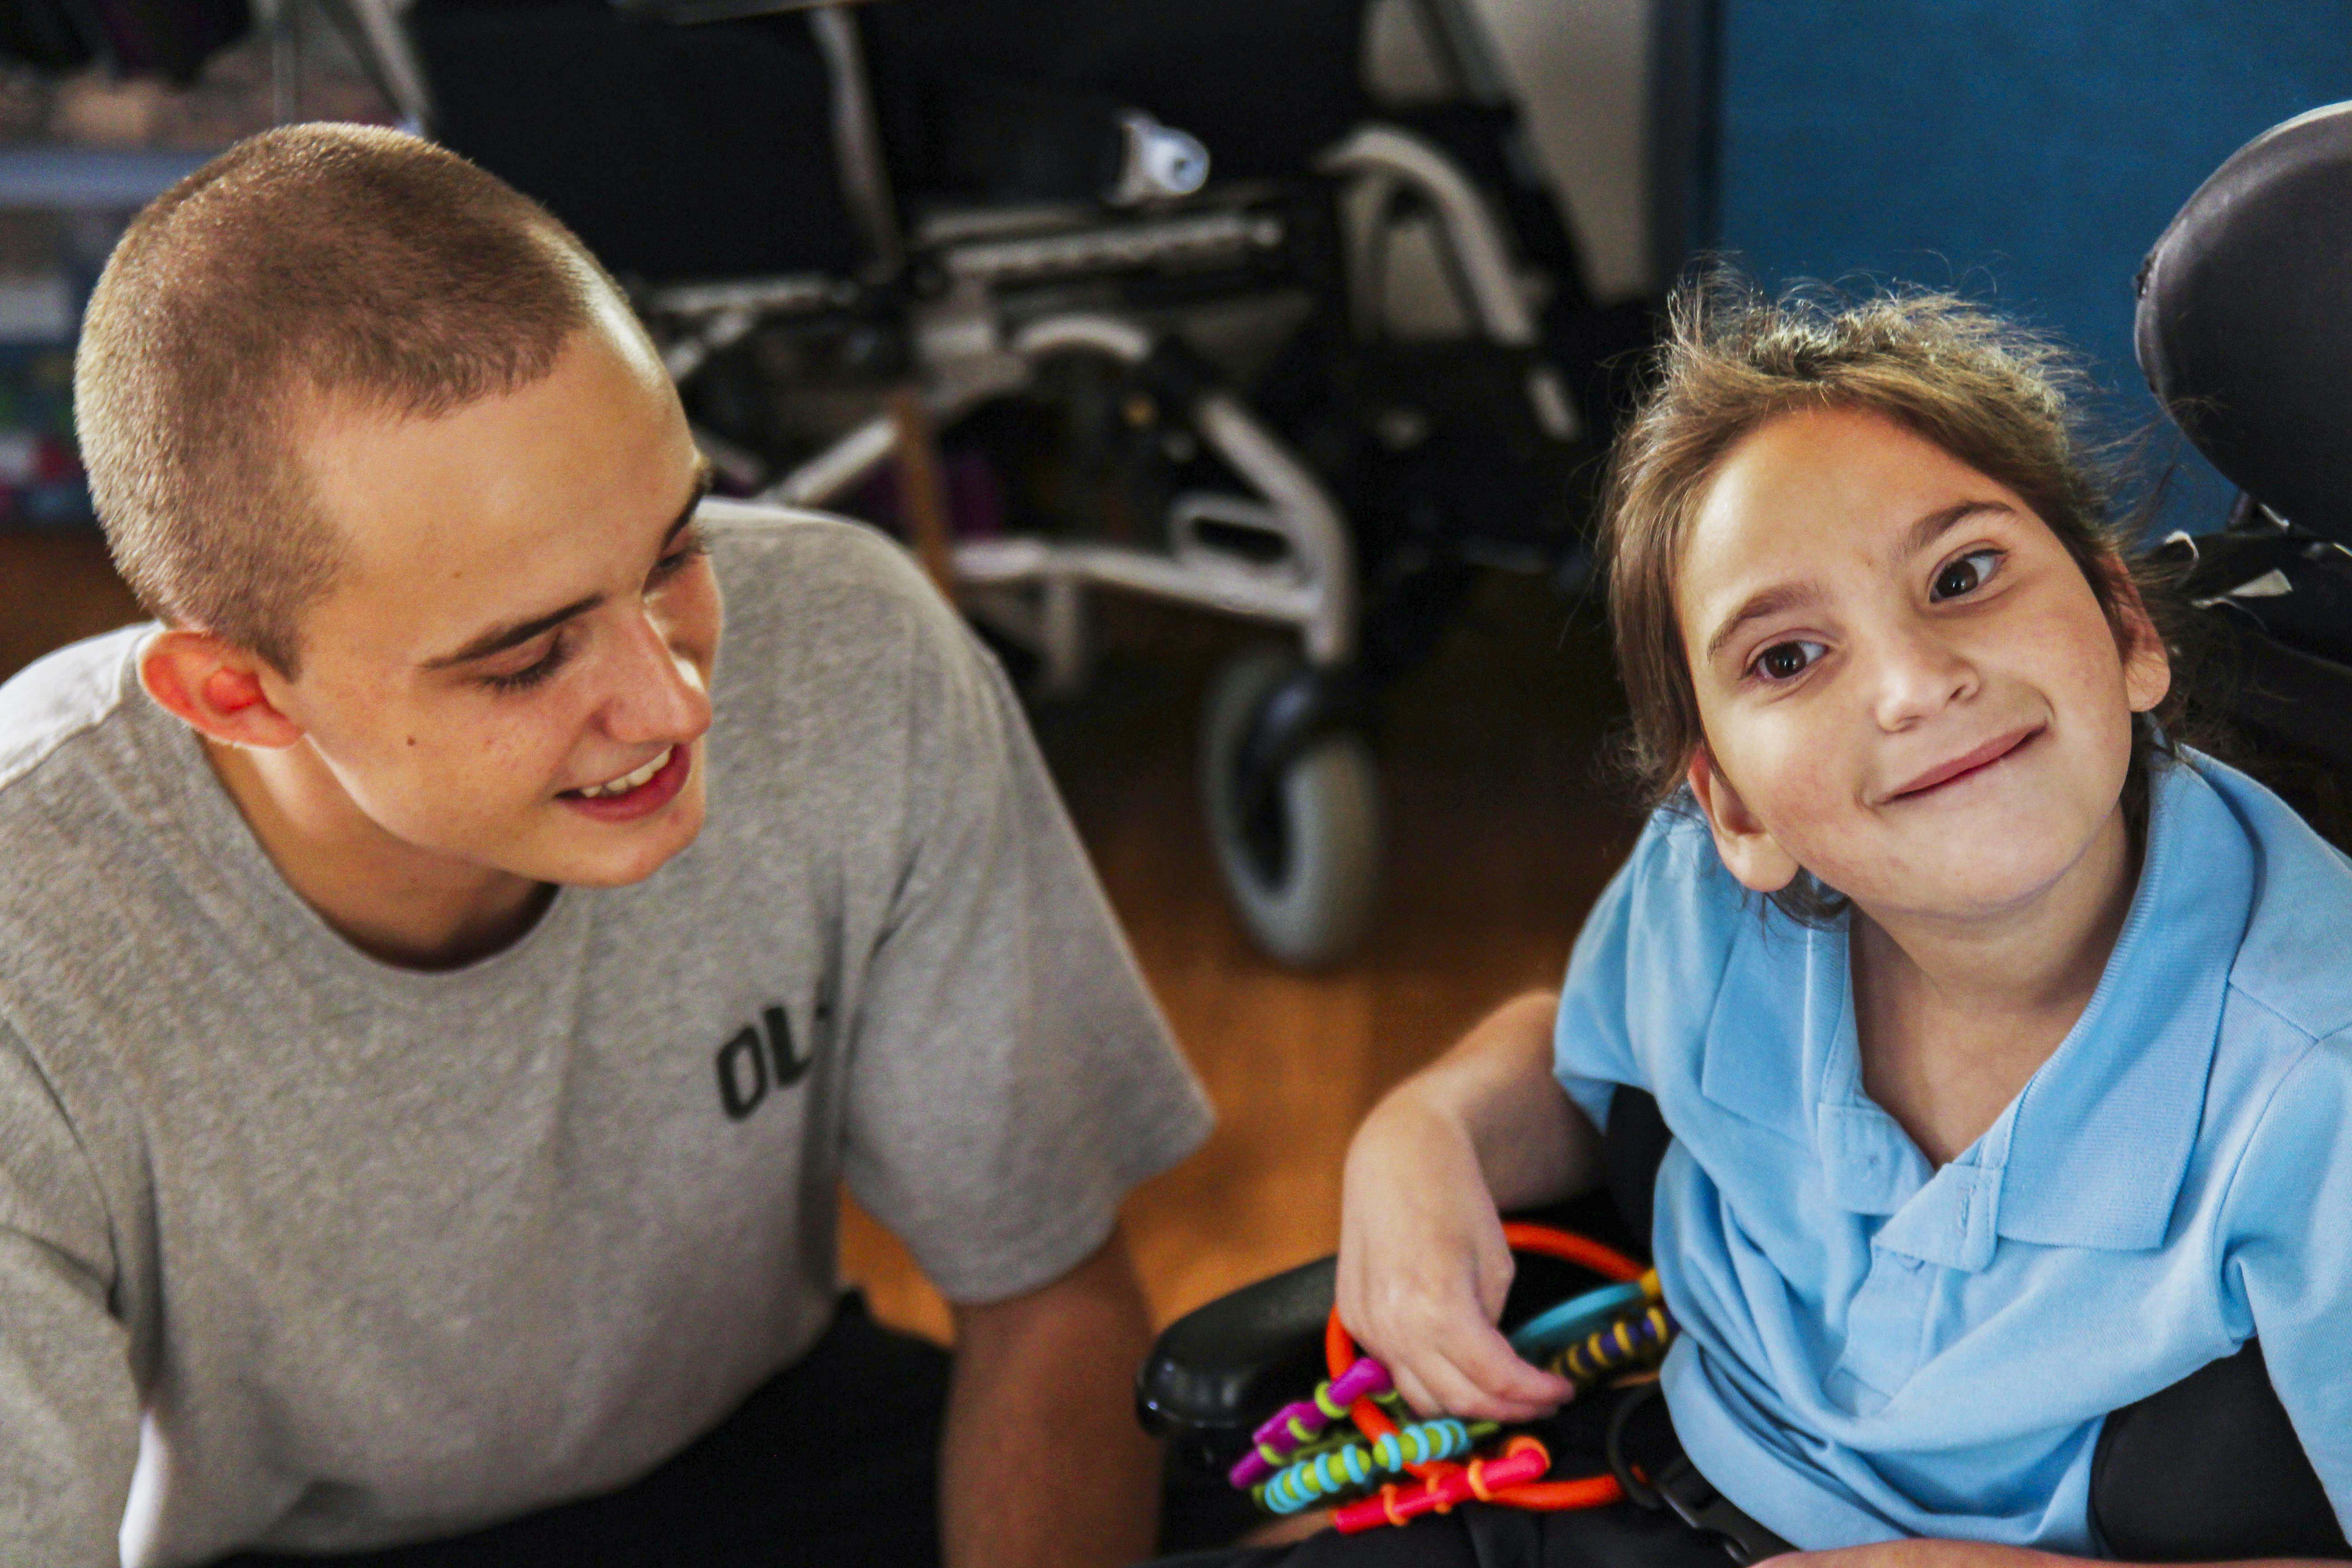 Identitywa support worker pictured with Olivia at the Riverton Children's House. Photo: Supplied.